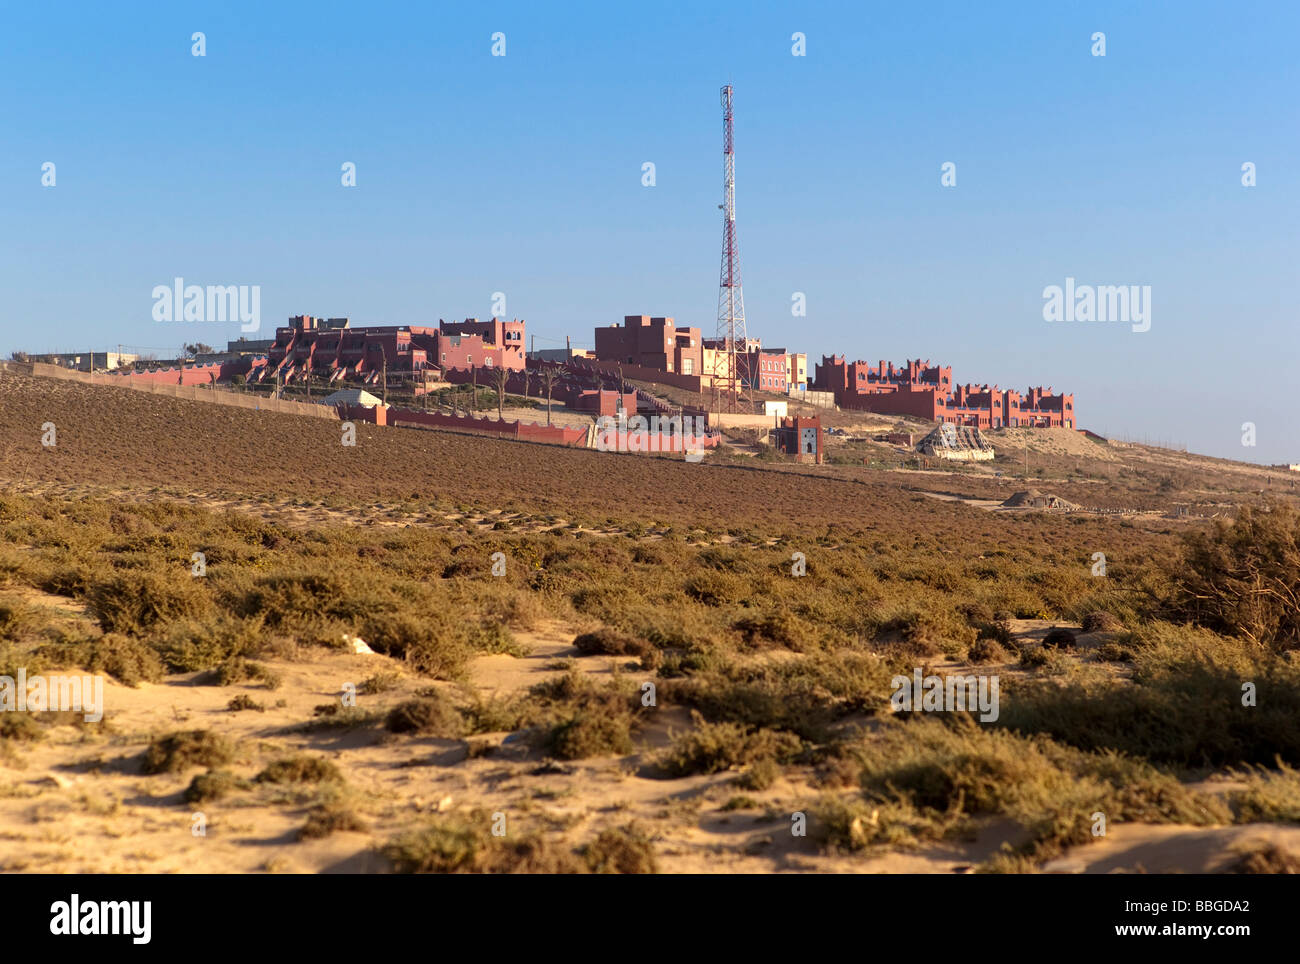 Hotel complex south of Agadir, Moroccan style architecture, Morocco, Africa Stock Photo